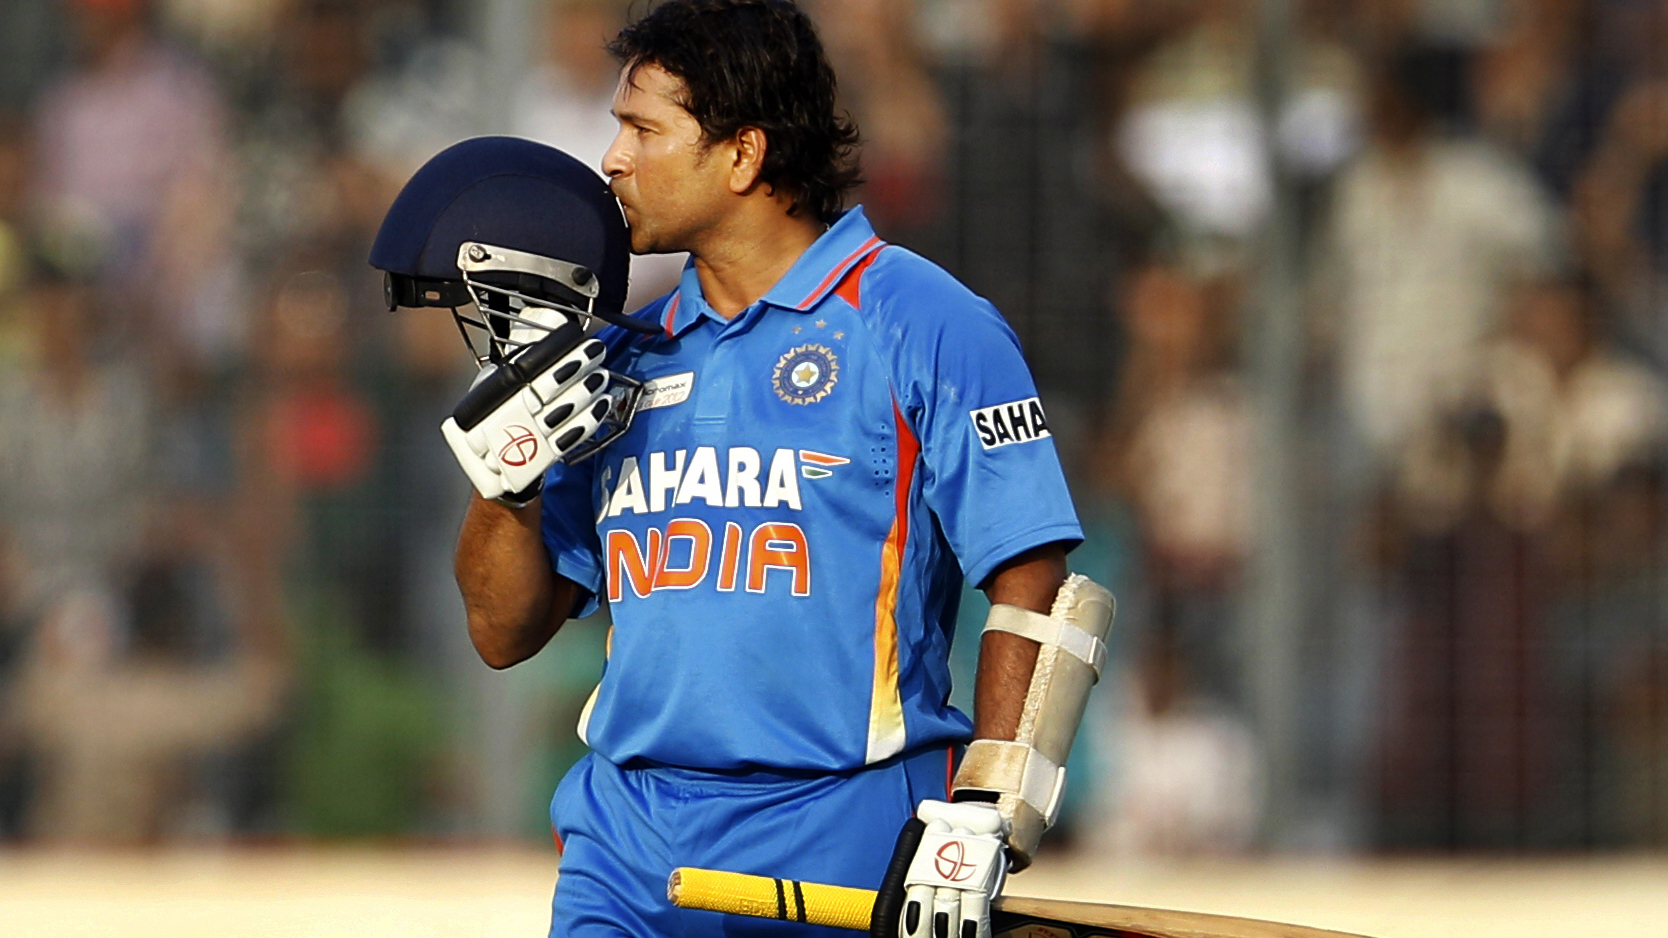 We will miss you Sachin